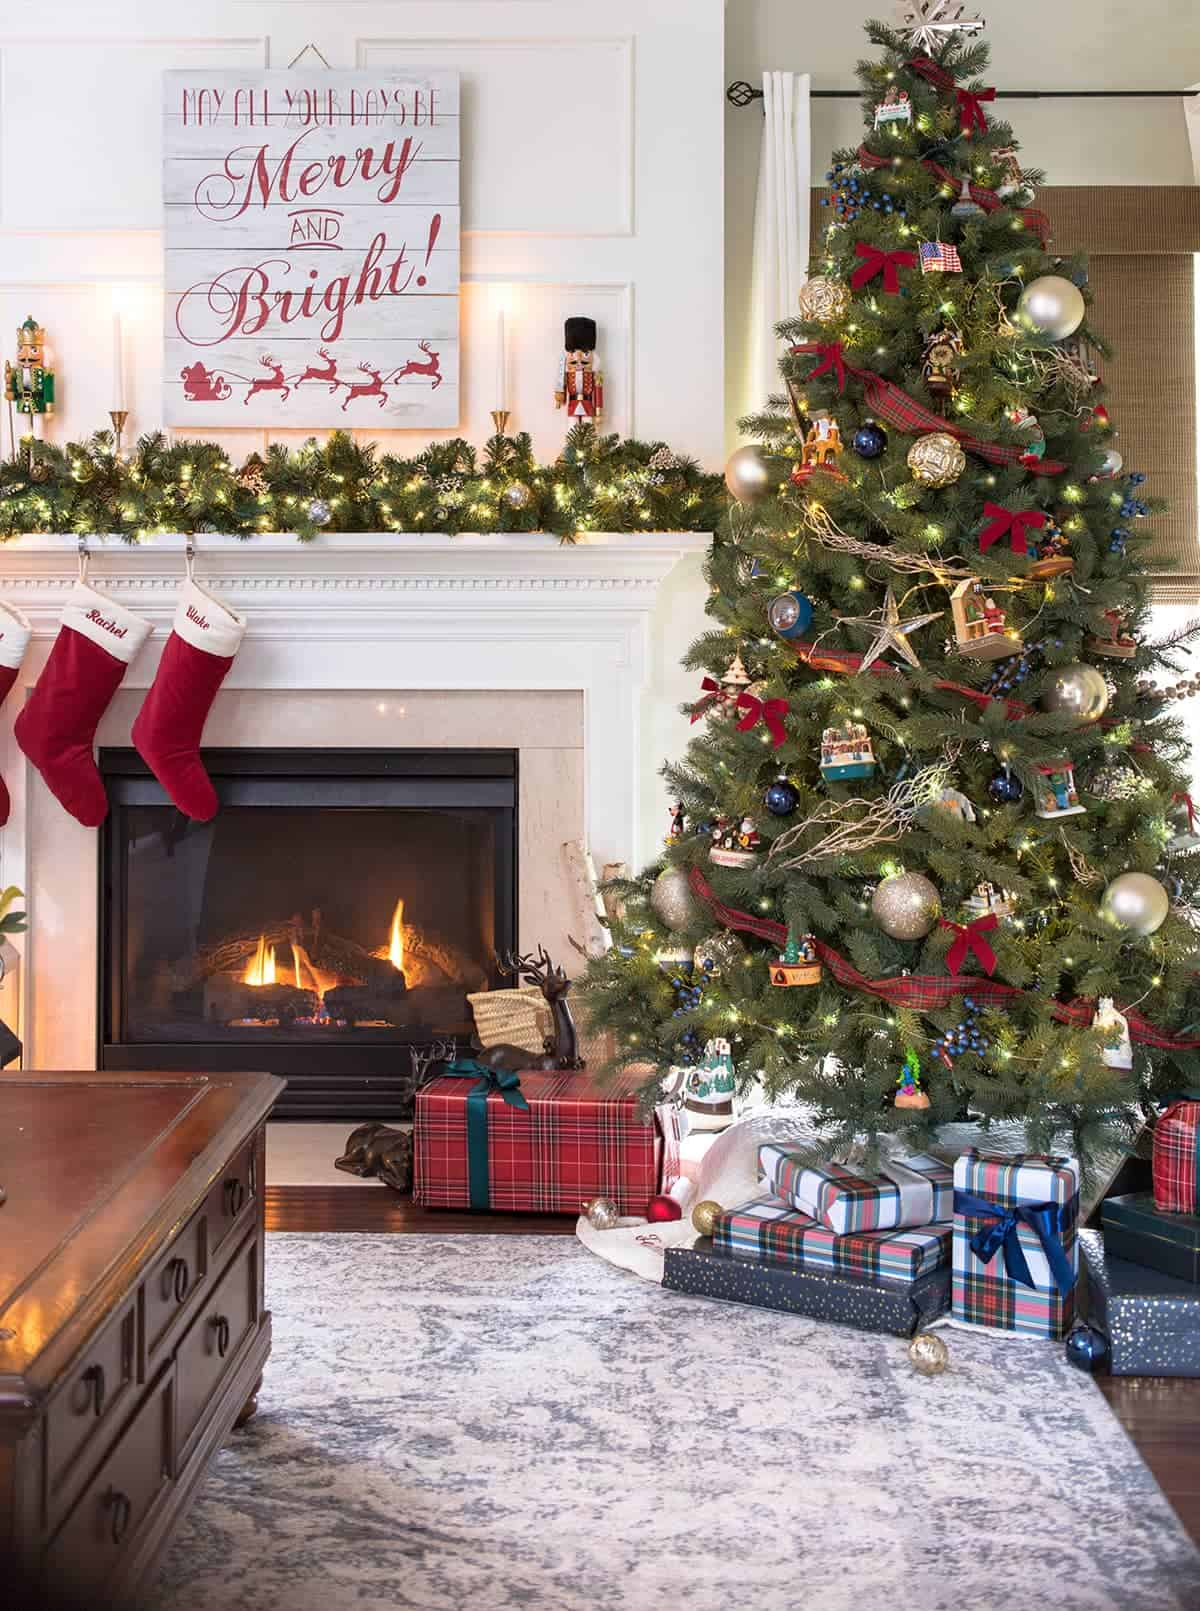 Traditional Tartan Plaid Christmas Tree Decorations in family room with fireplace aglow and presents stacked under tree.